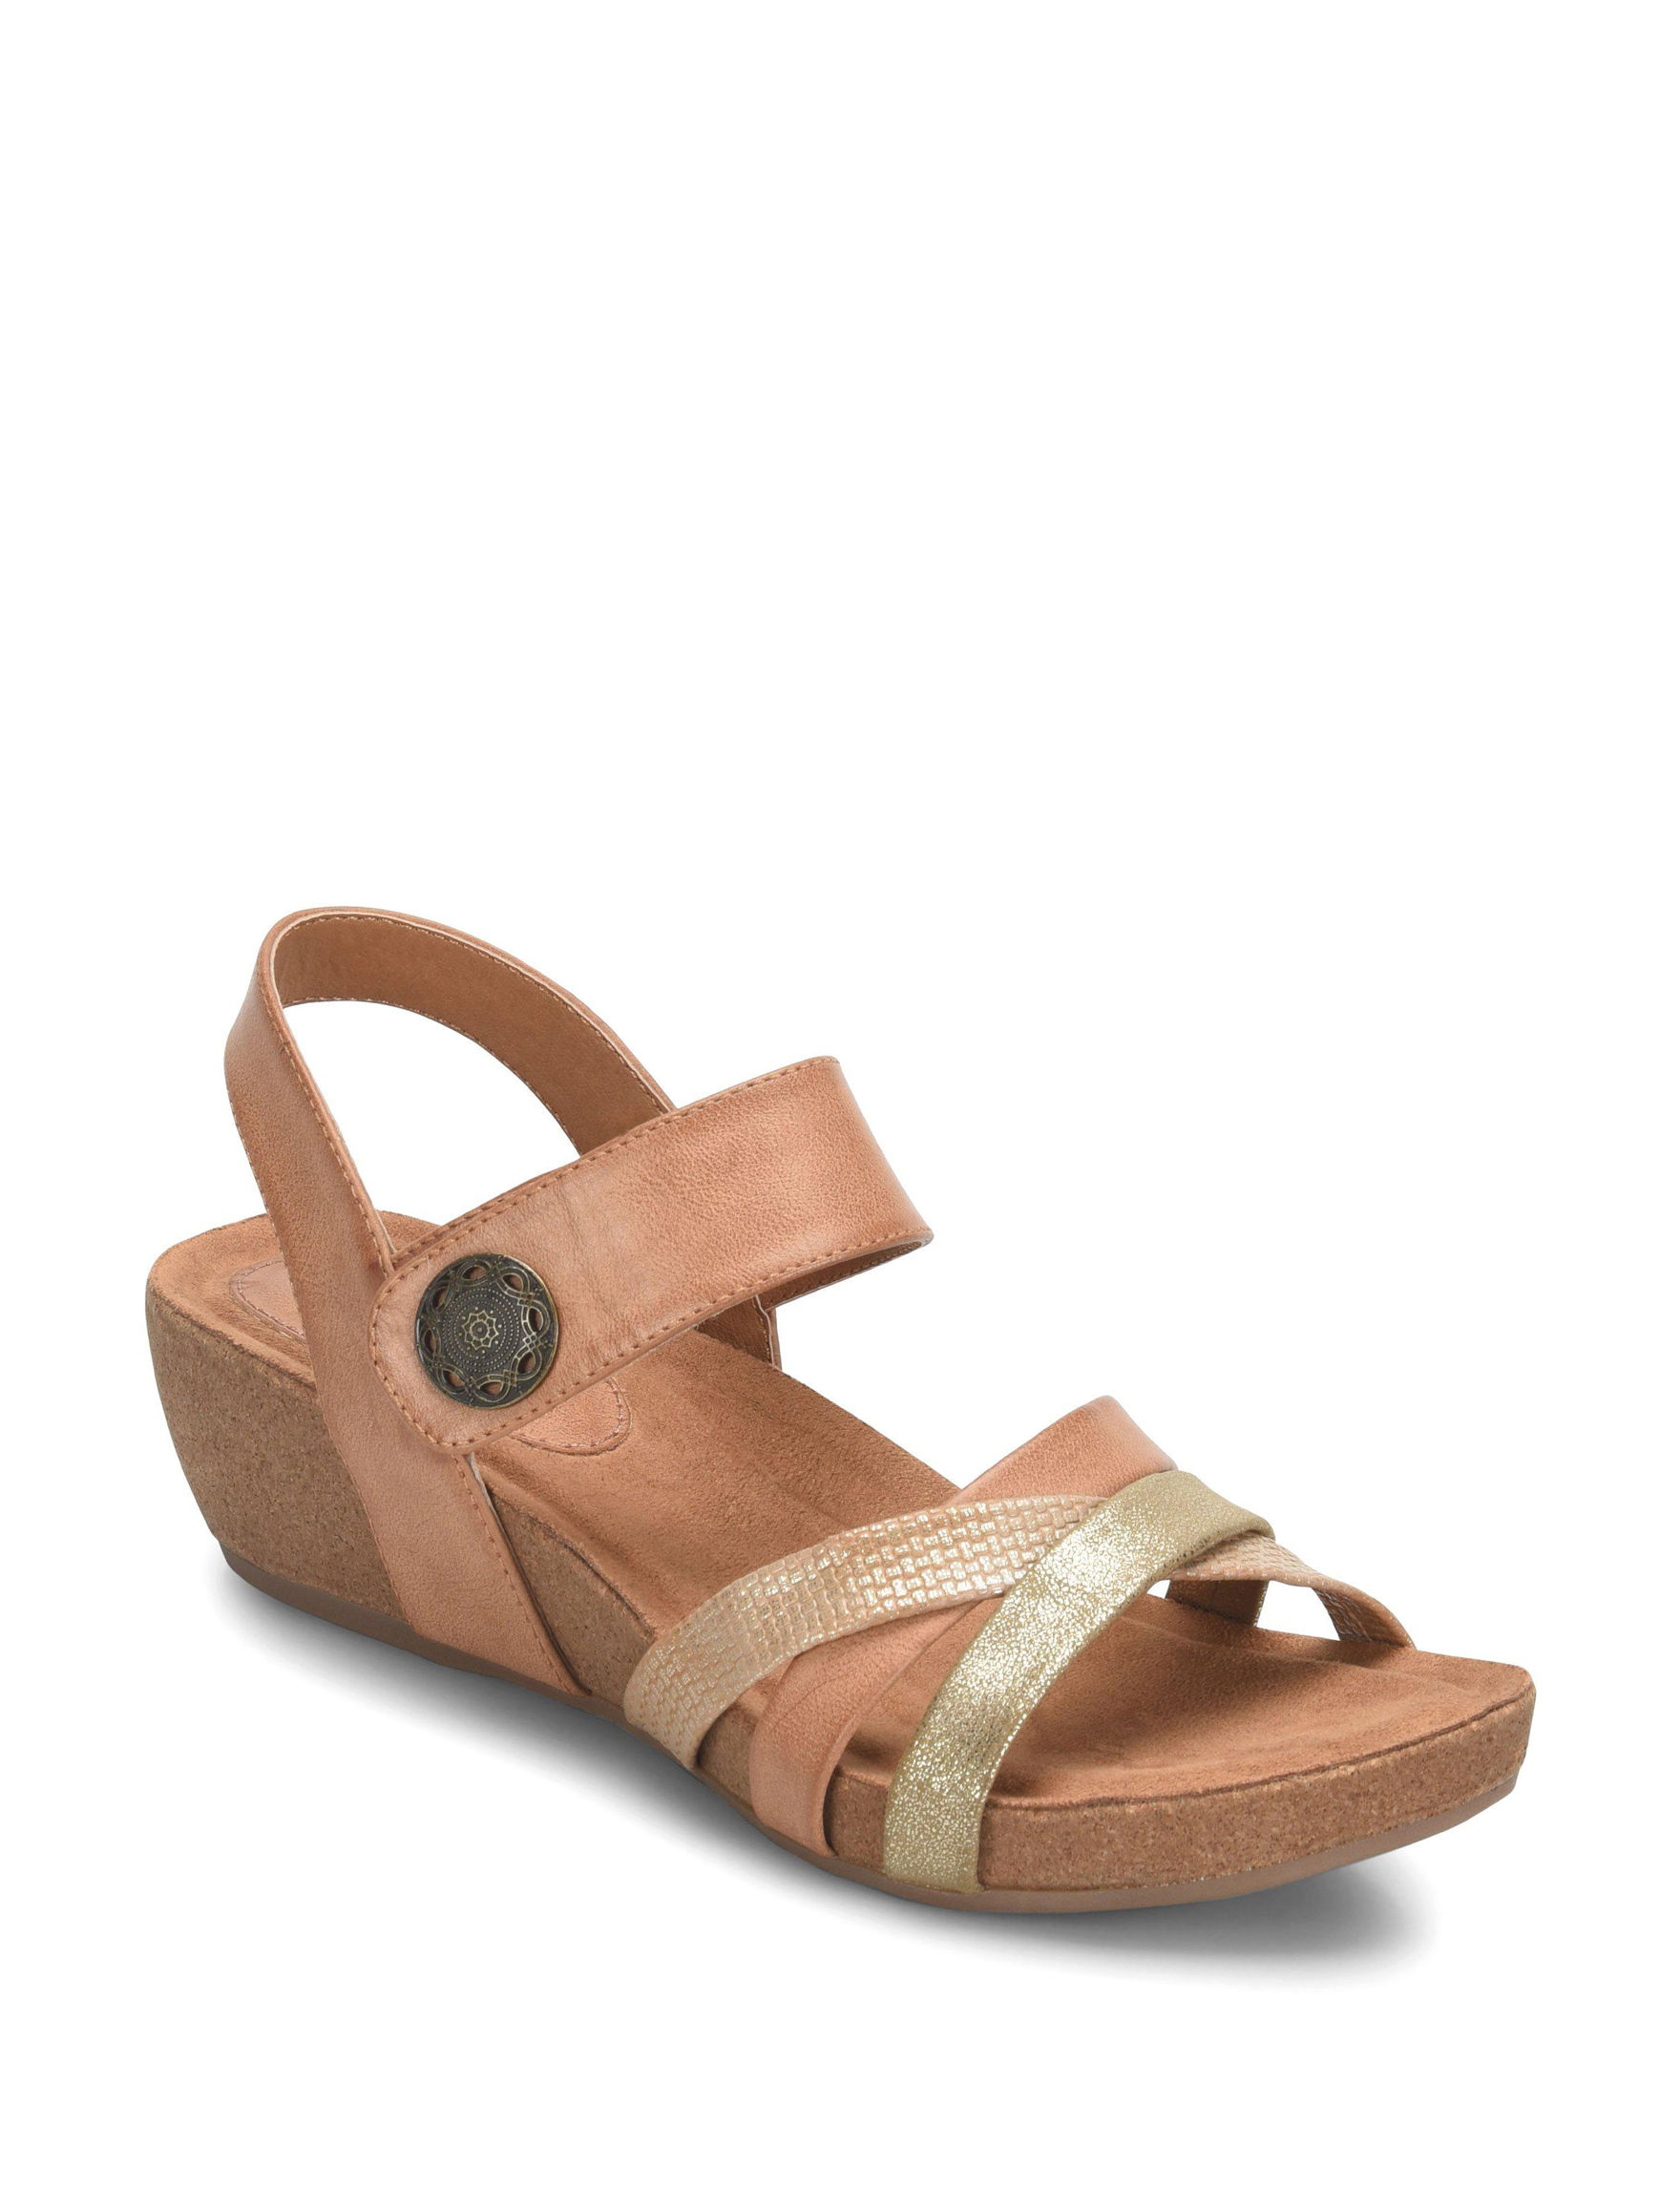 Eurosoft Toast Wedge Sandals